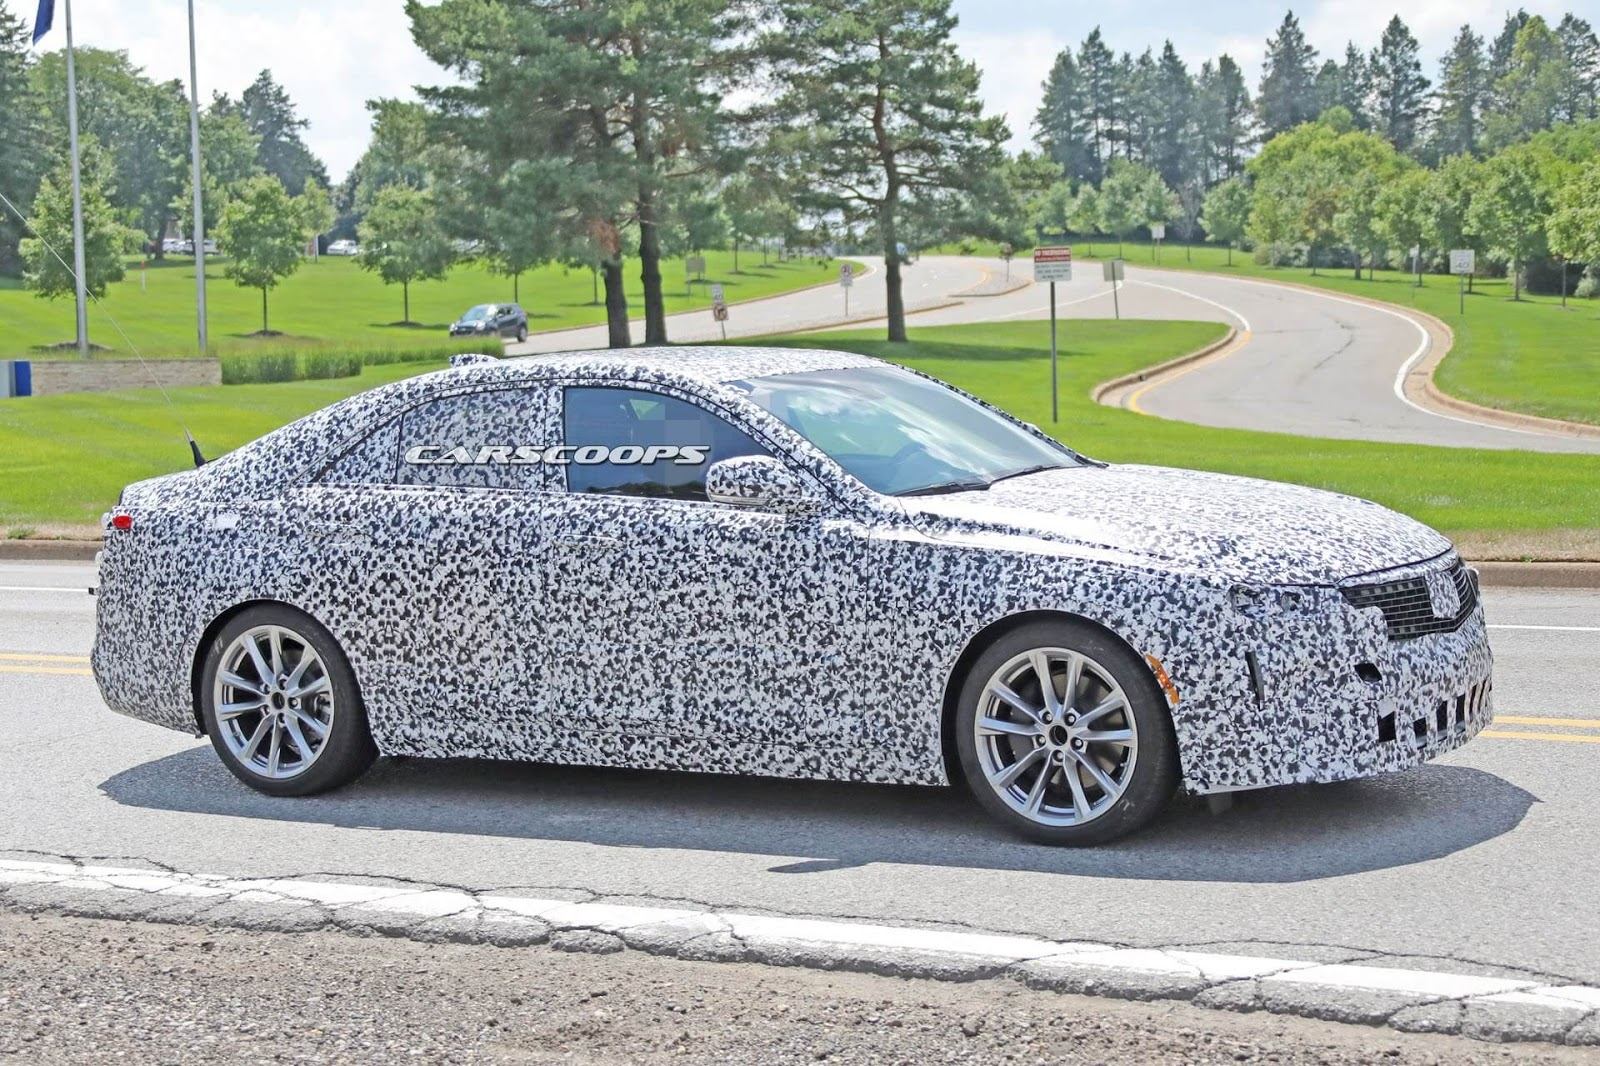 Confirmation Positive That Cadillac's Working On A New Entry-Level Sedan